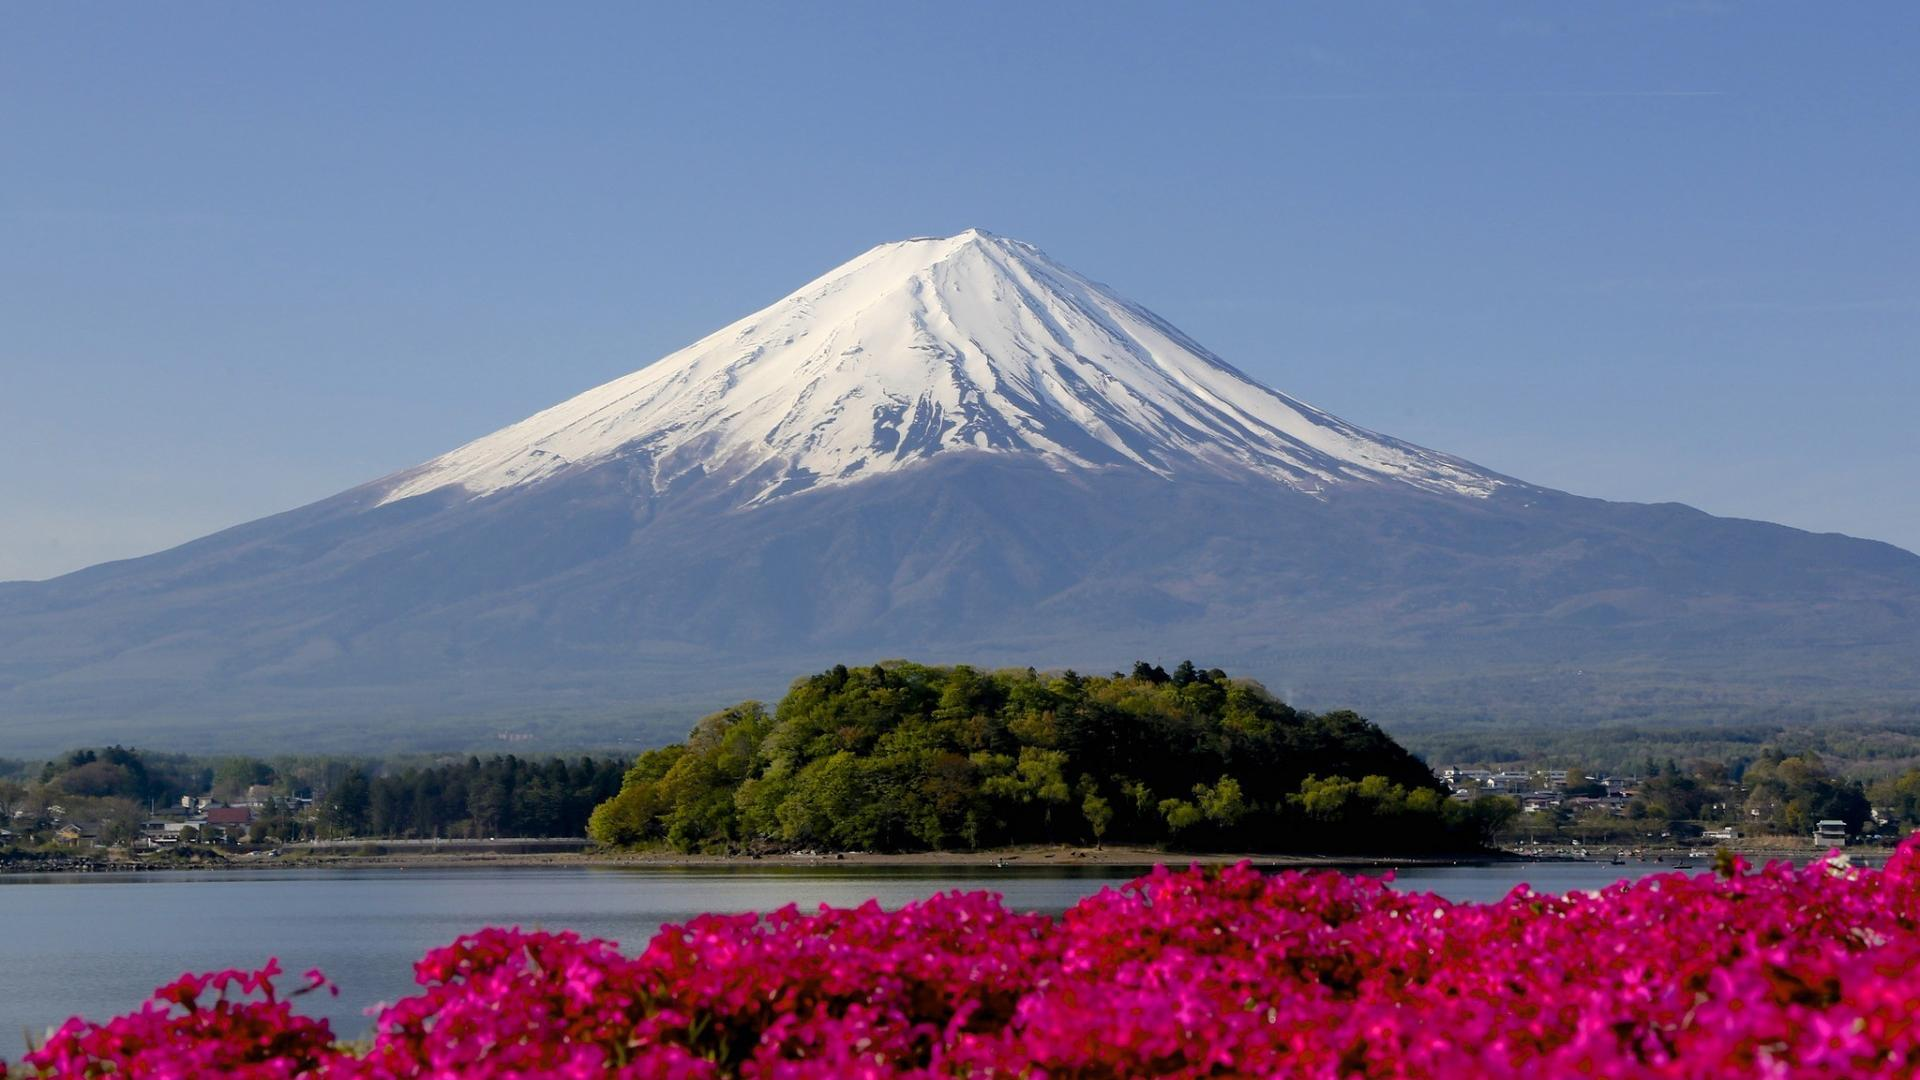 Japan mount fuji mt landscapes mountains wallpaper 64403 1920x1080